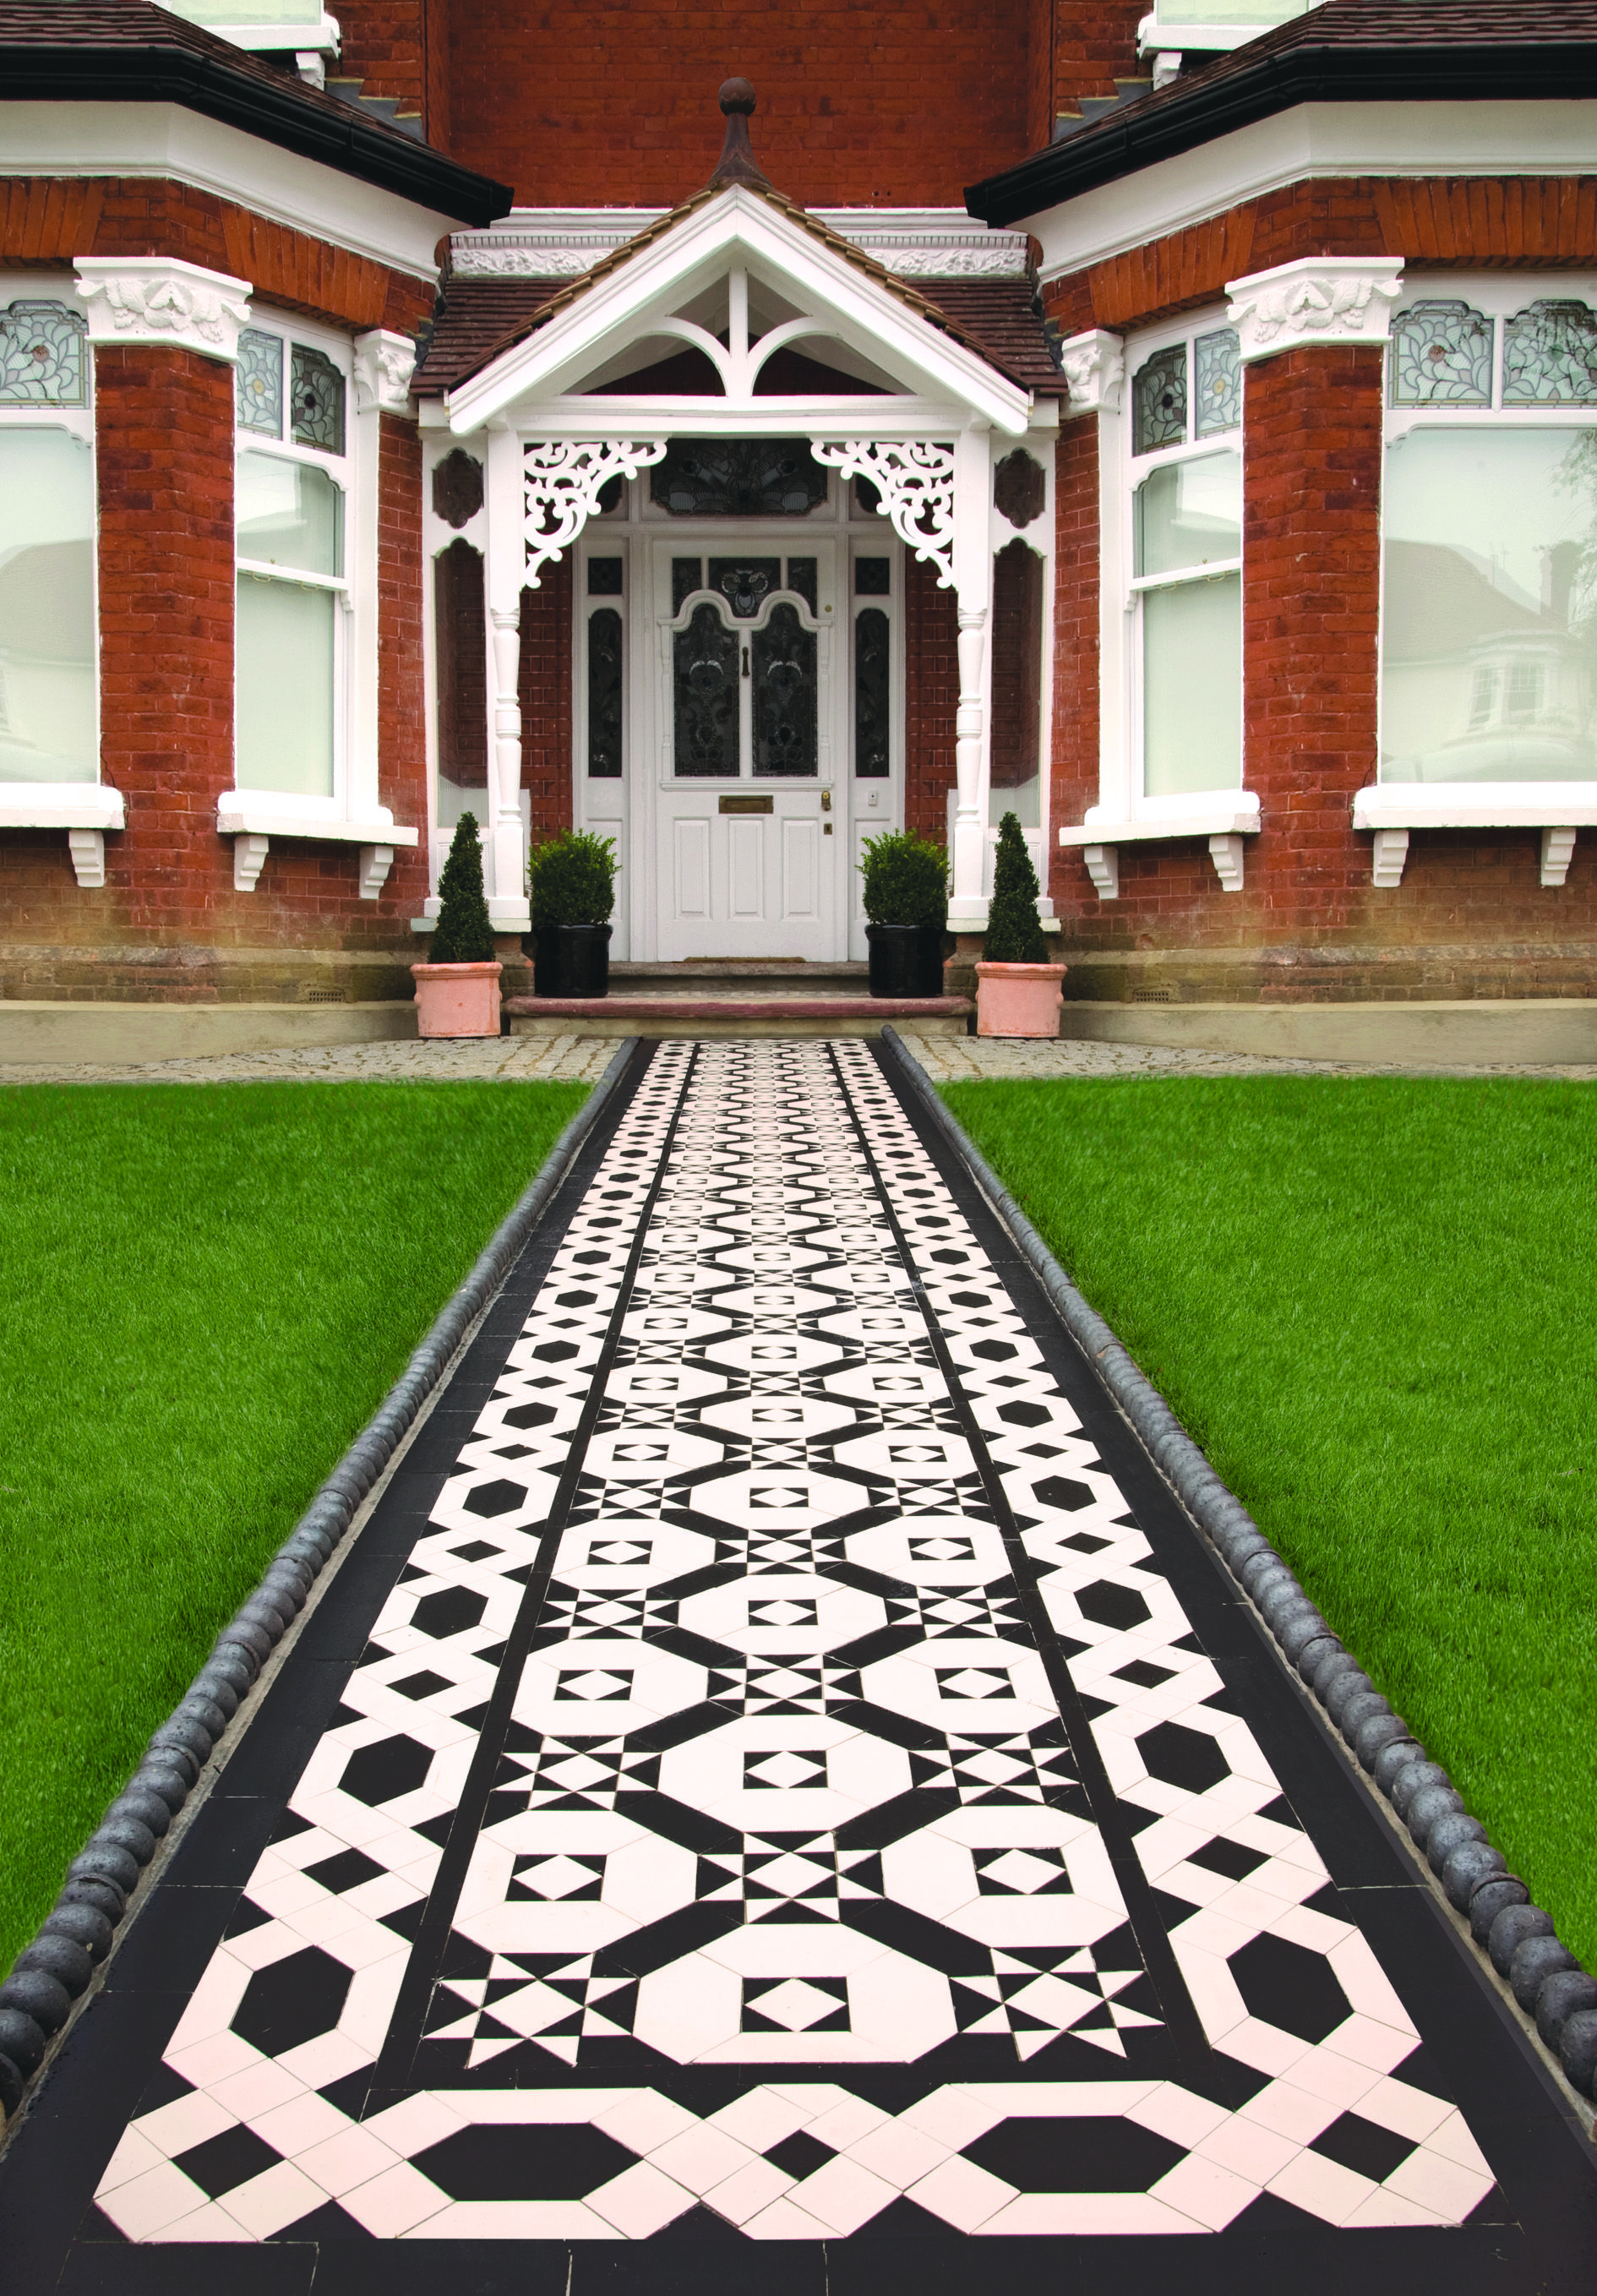 The Westminster Pattern Victorian Floor Tiles By Original Style Uk